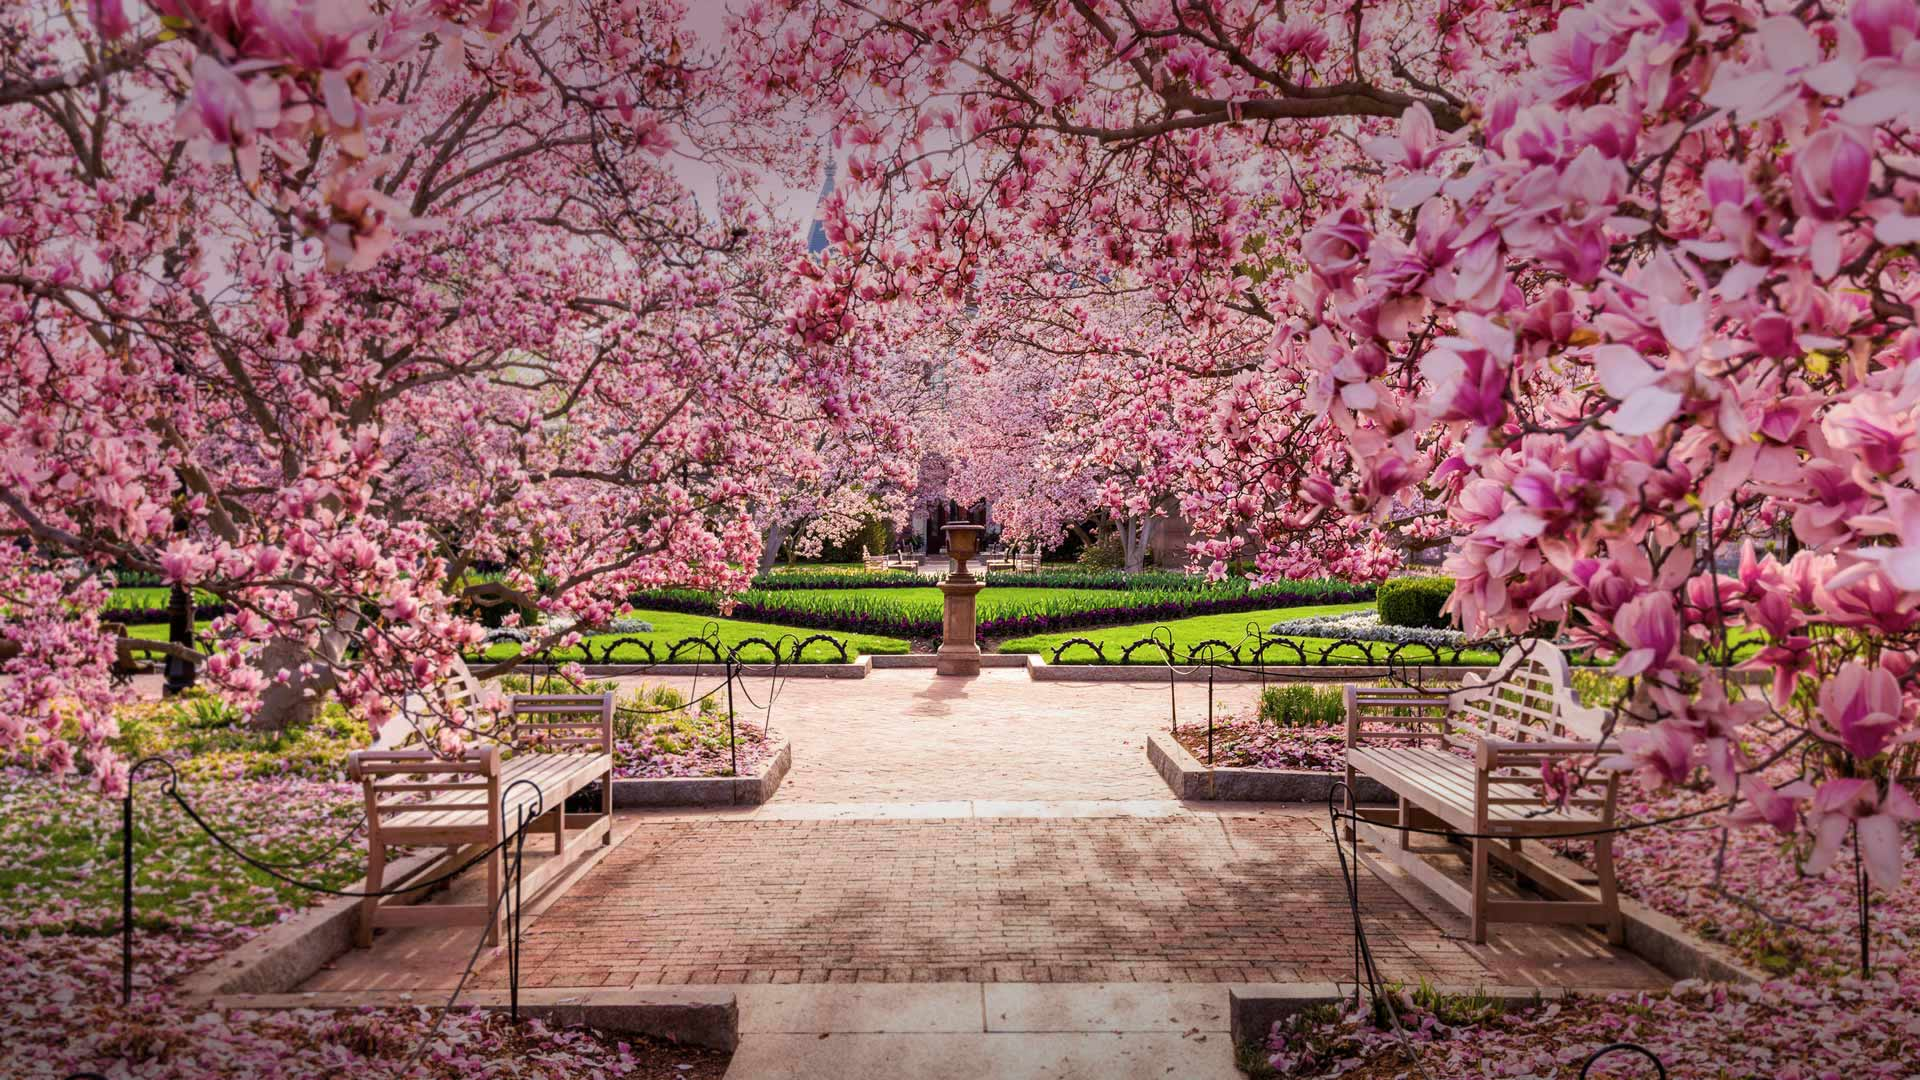 Cherry blossoms at the National Mall, Washington, DC (© Sean Pavone/Alamy)